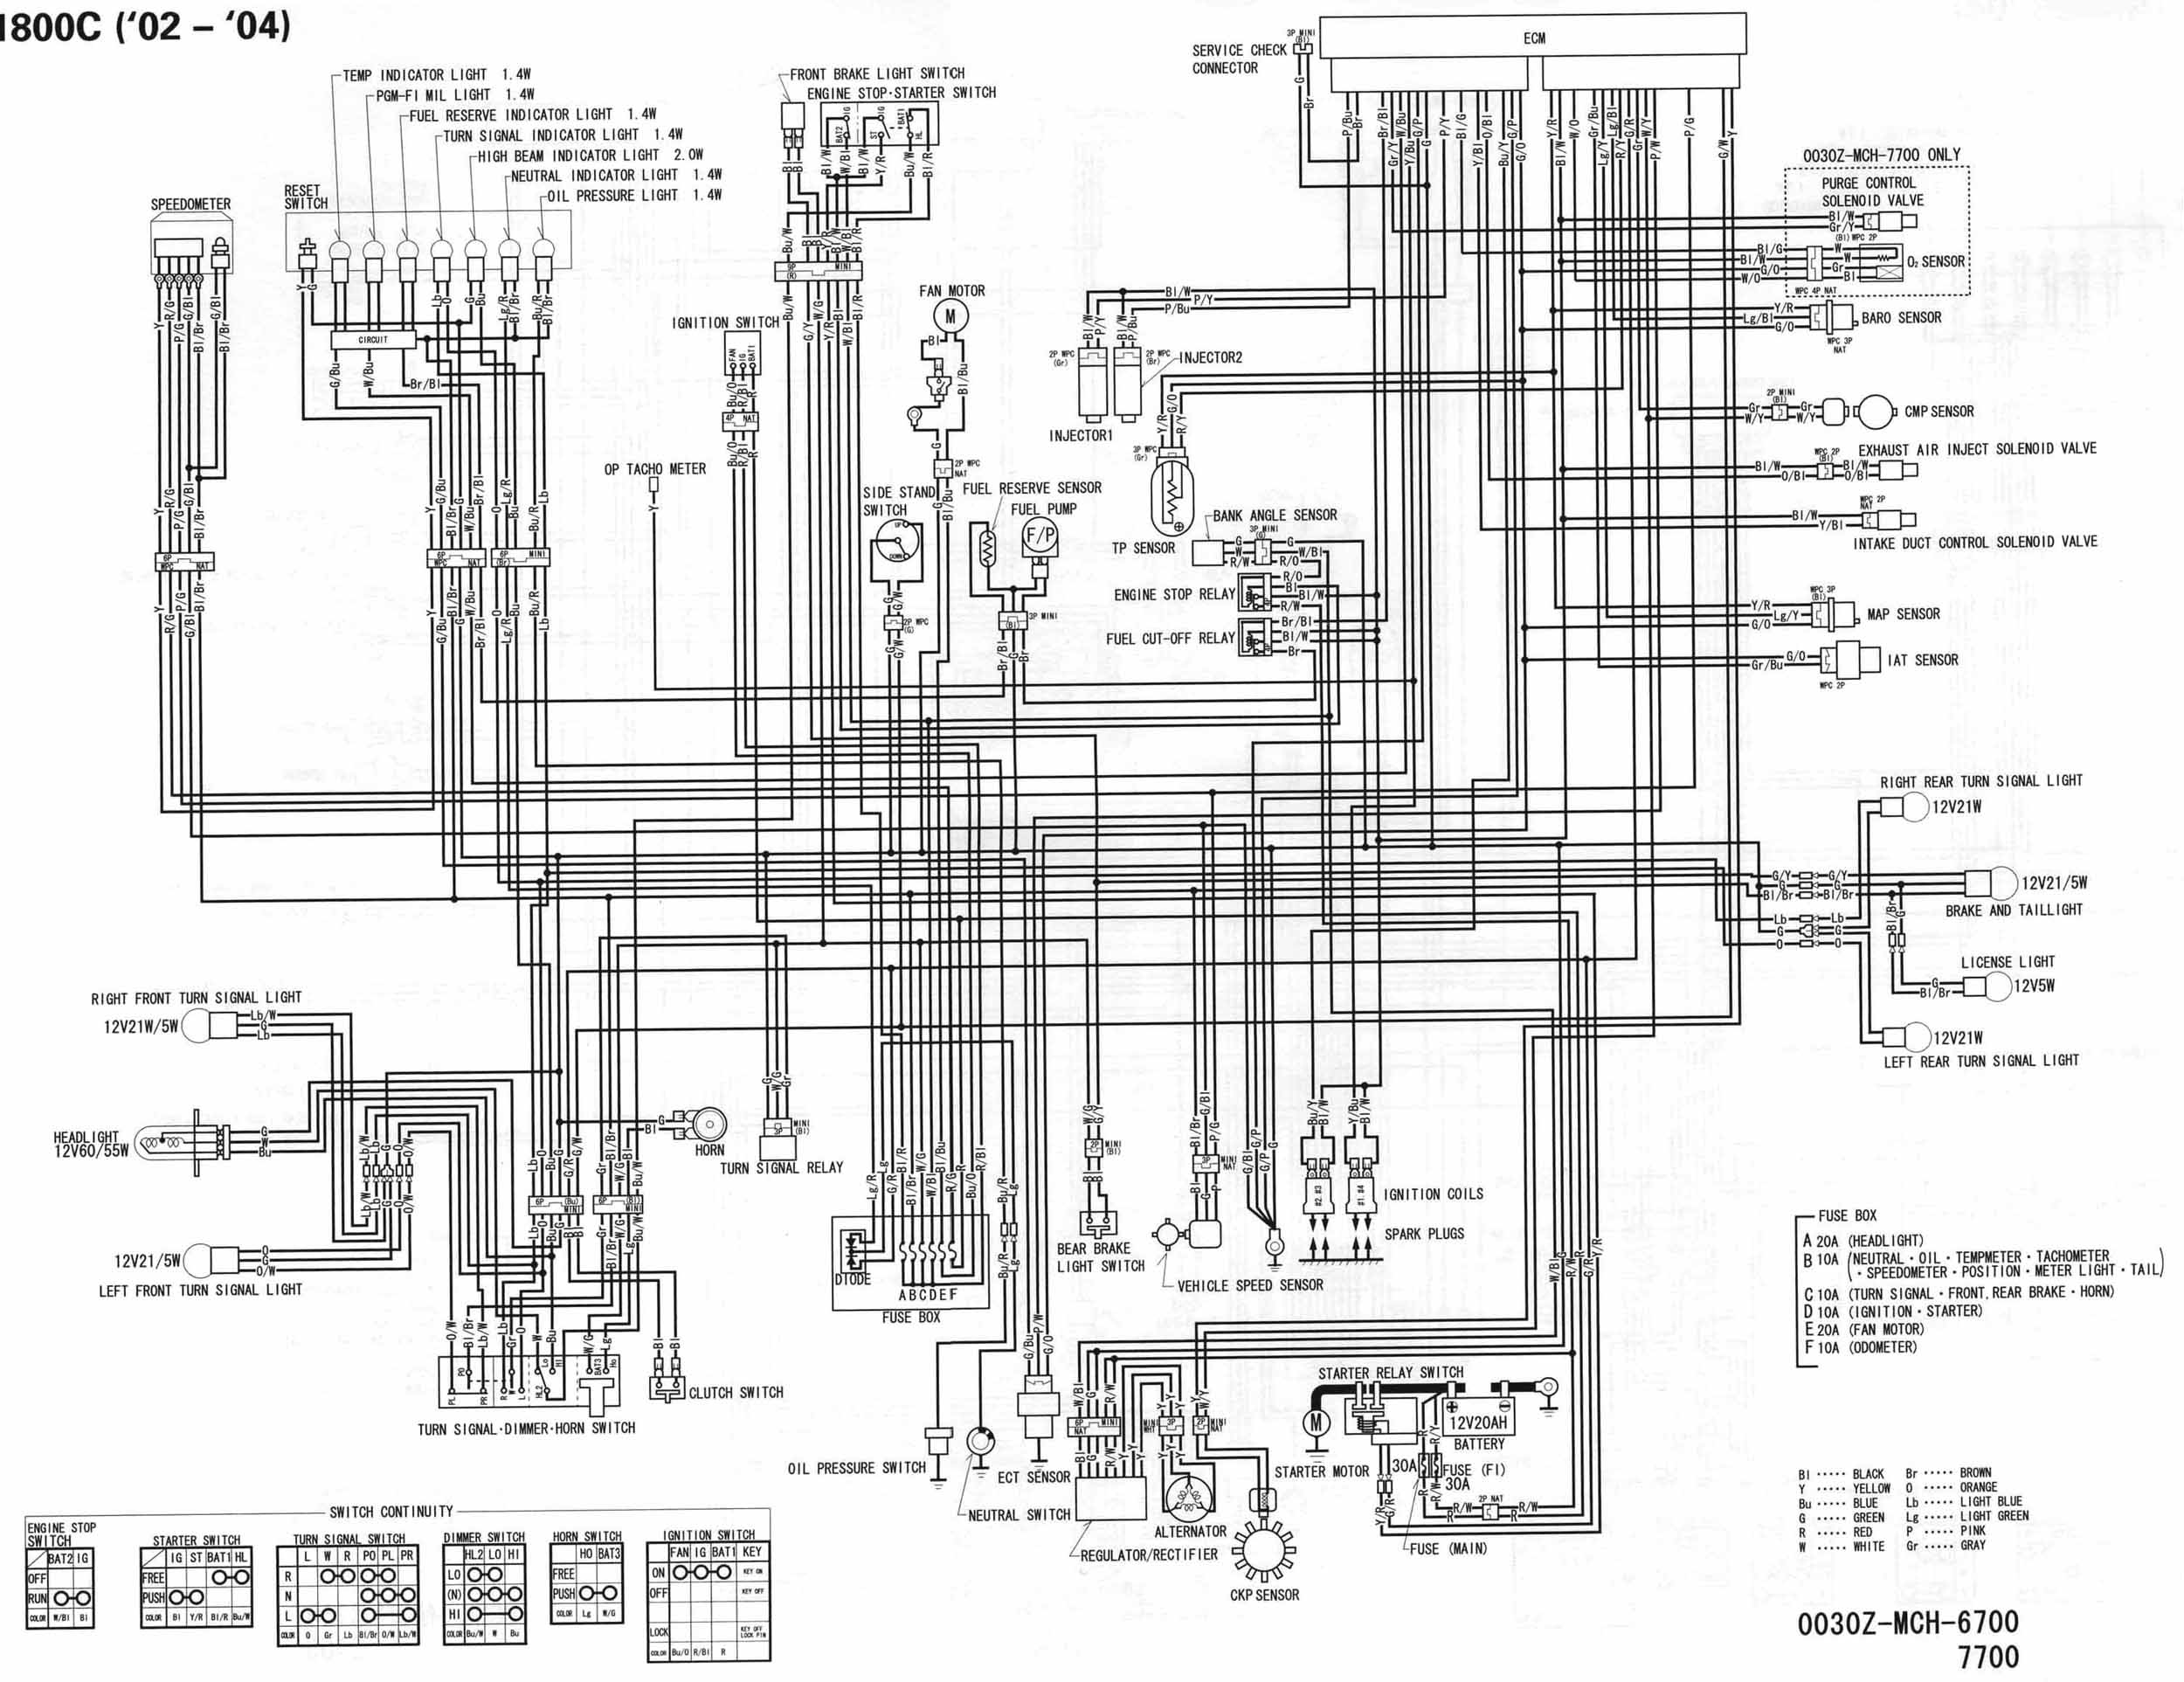 motorcycle wire schematics bareass choppers motorcycle tech pages rh tech bareasschoppers com Wiring- Diagram 1975 Light Wiring Diagram